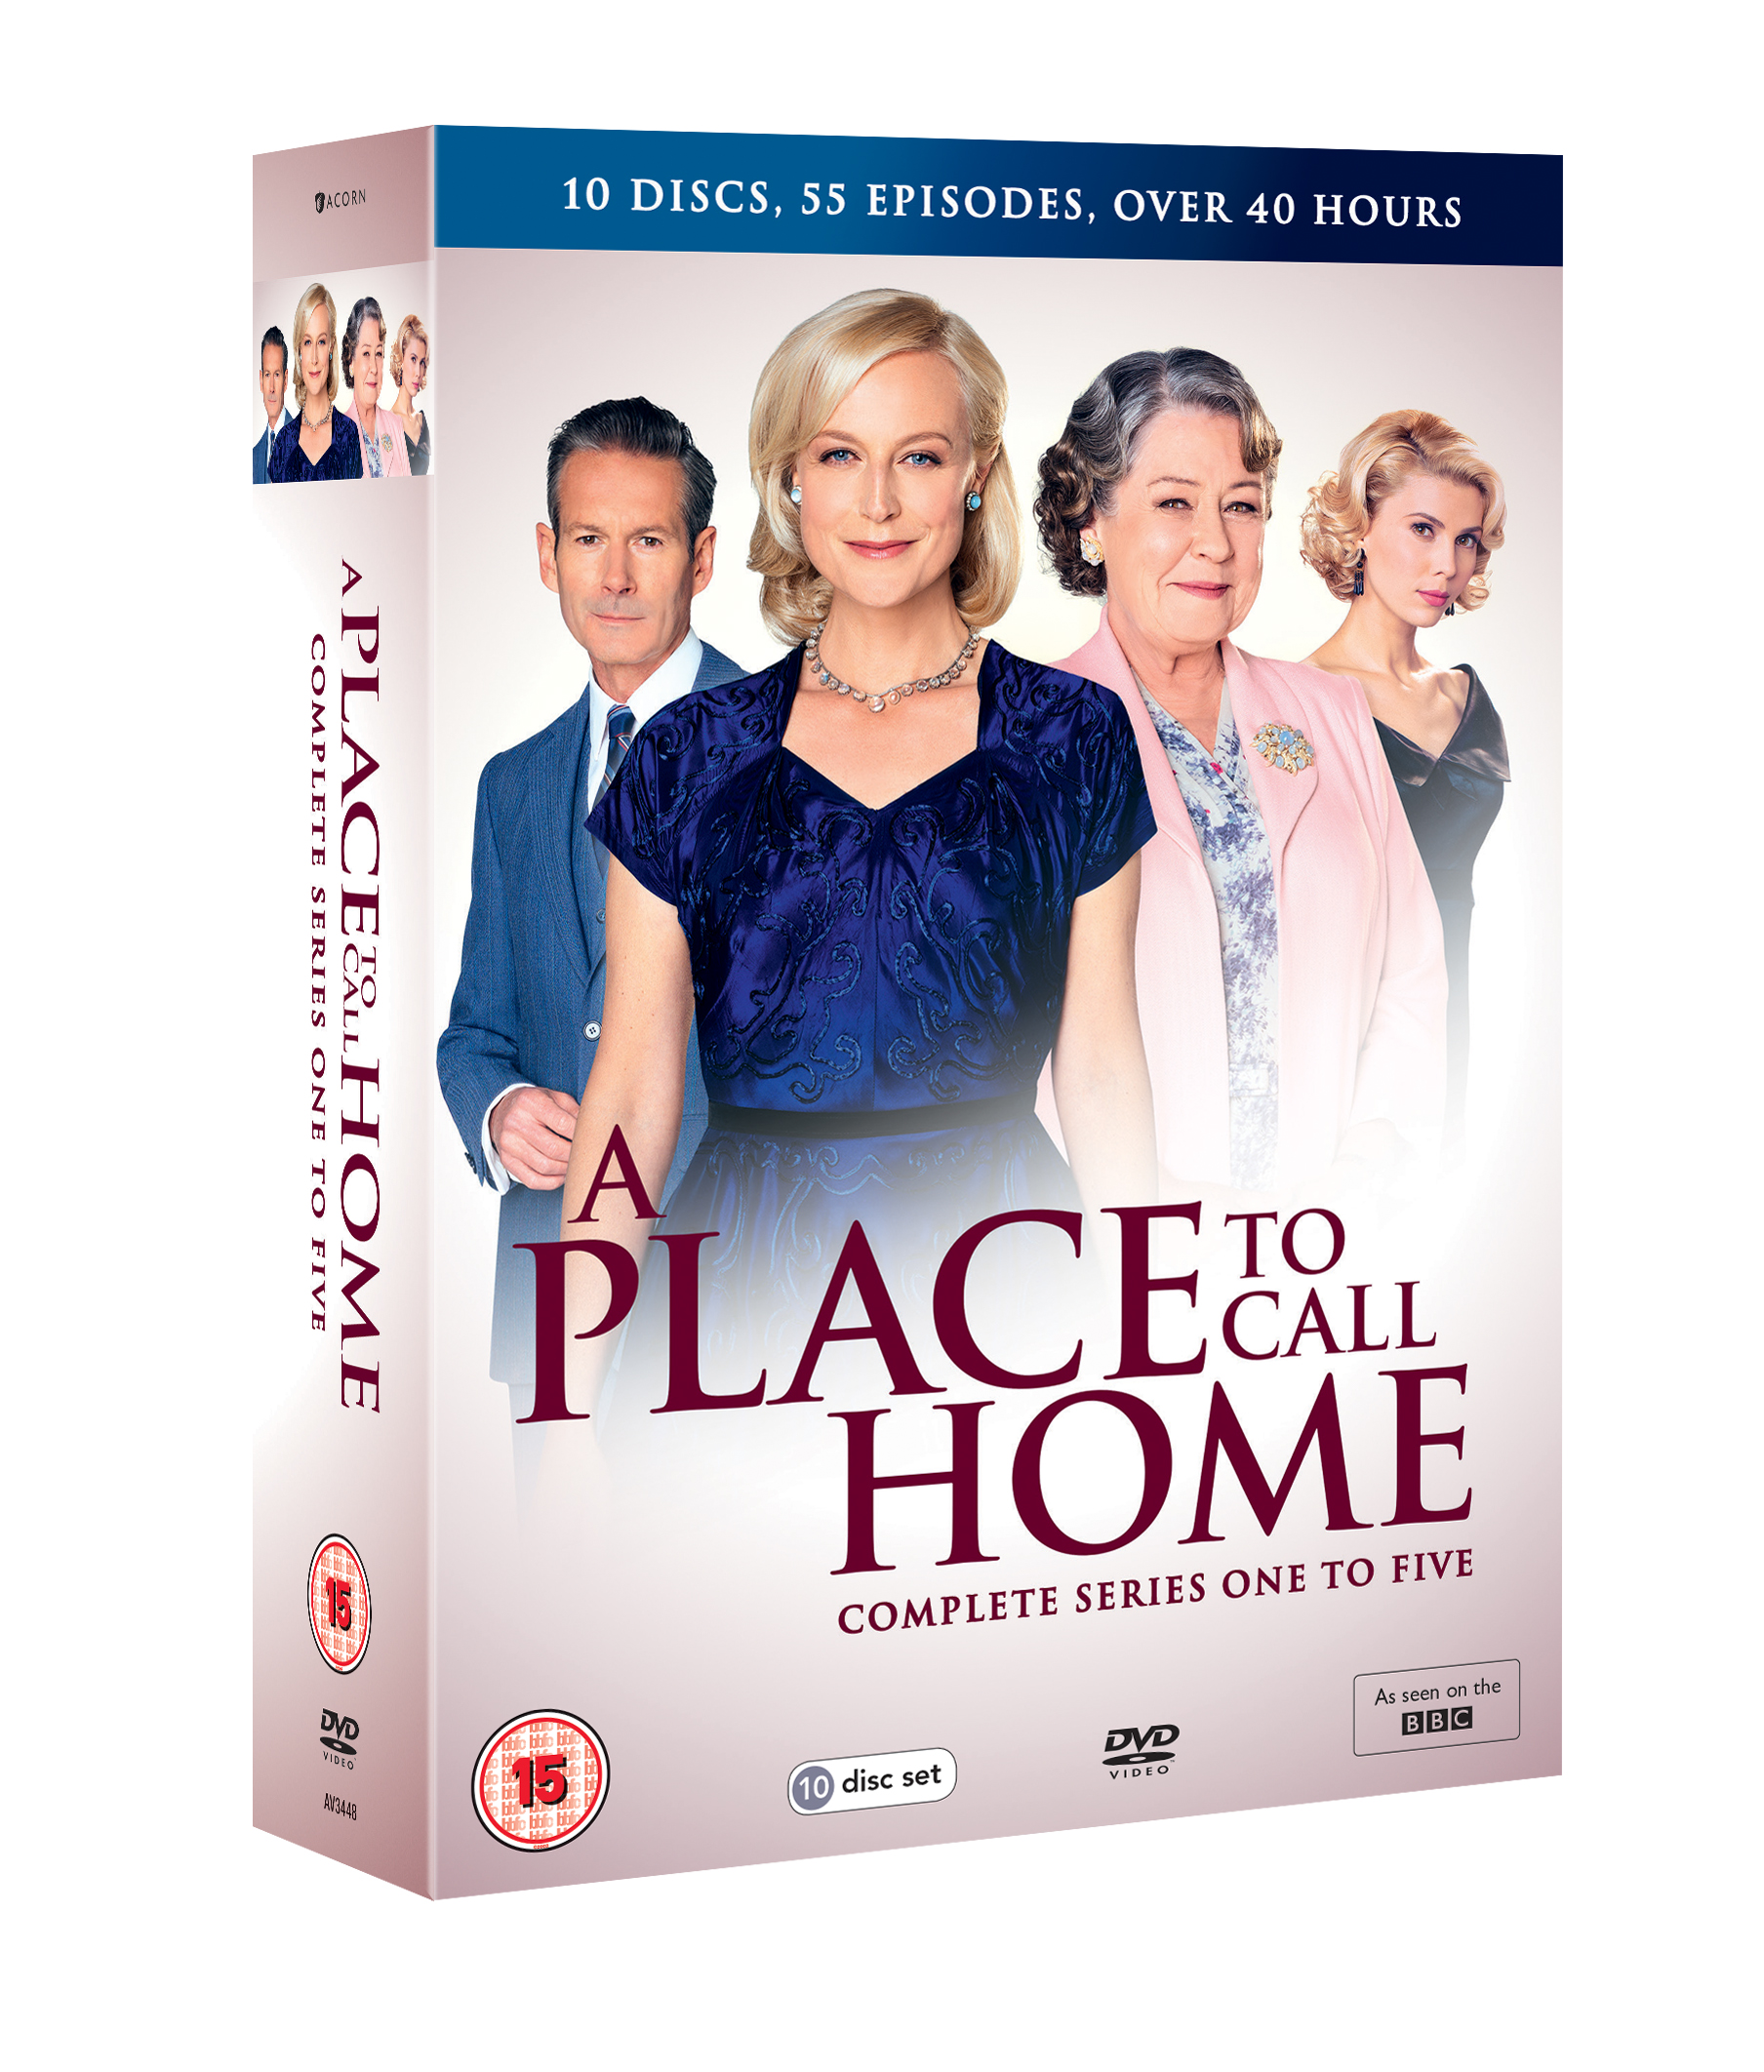 a place to call home dvd.JPG